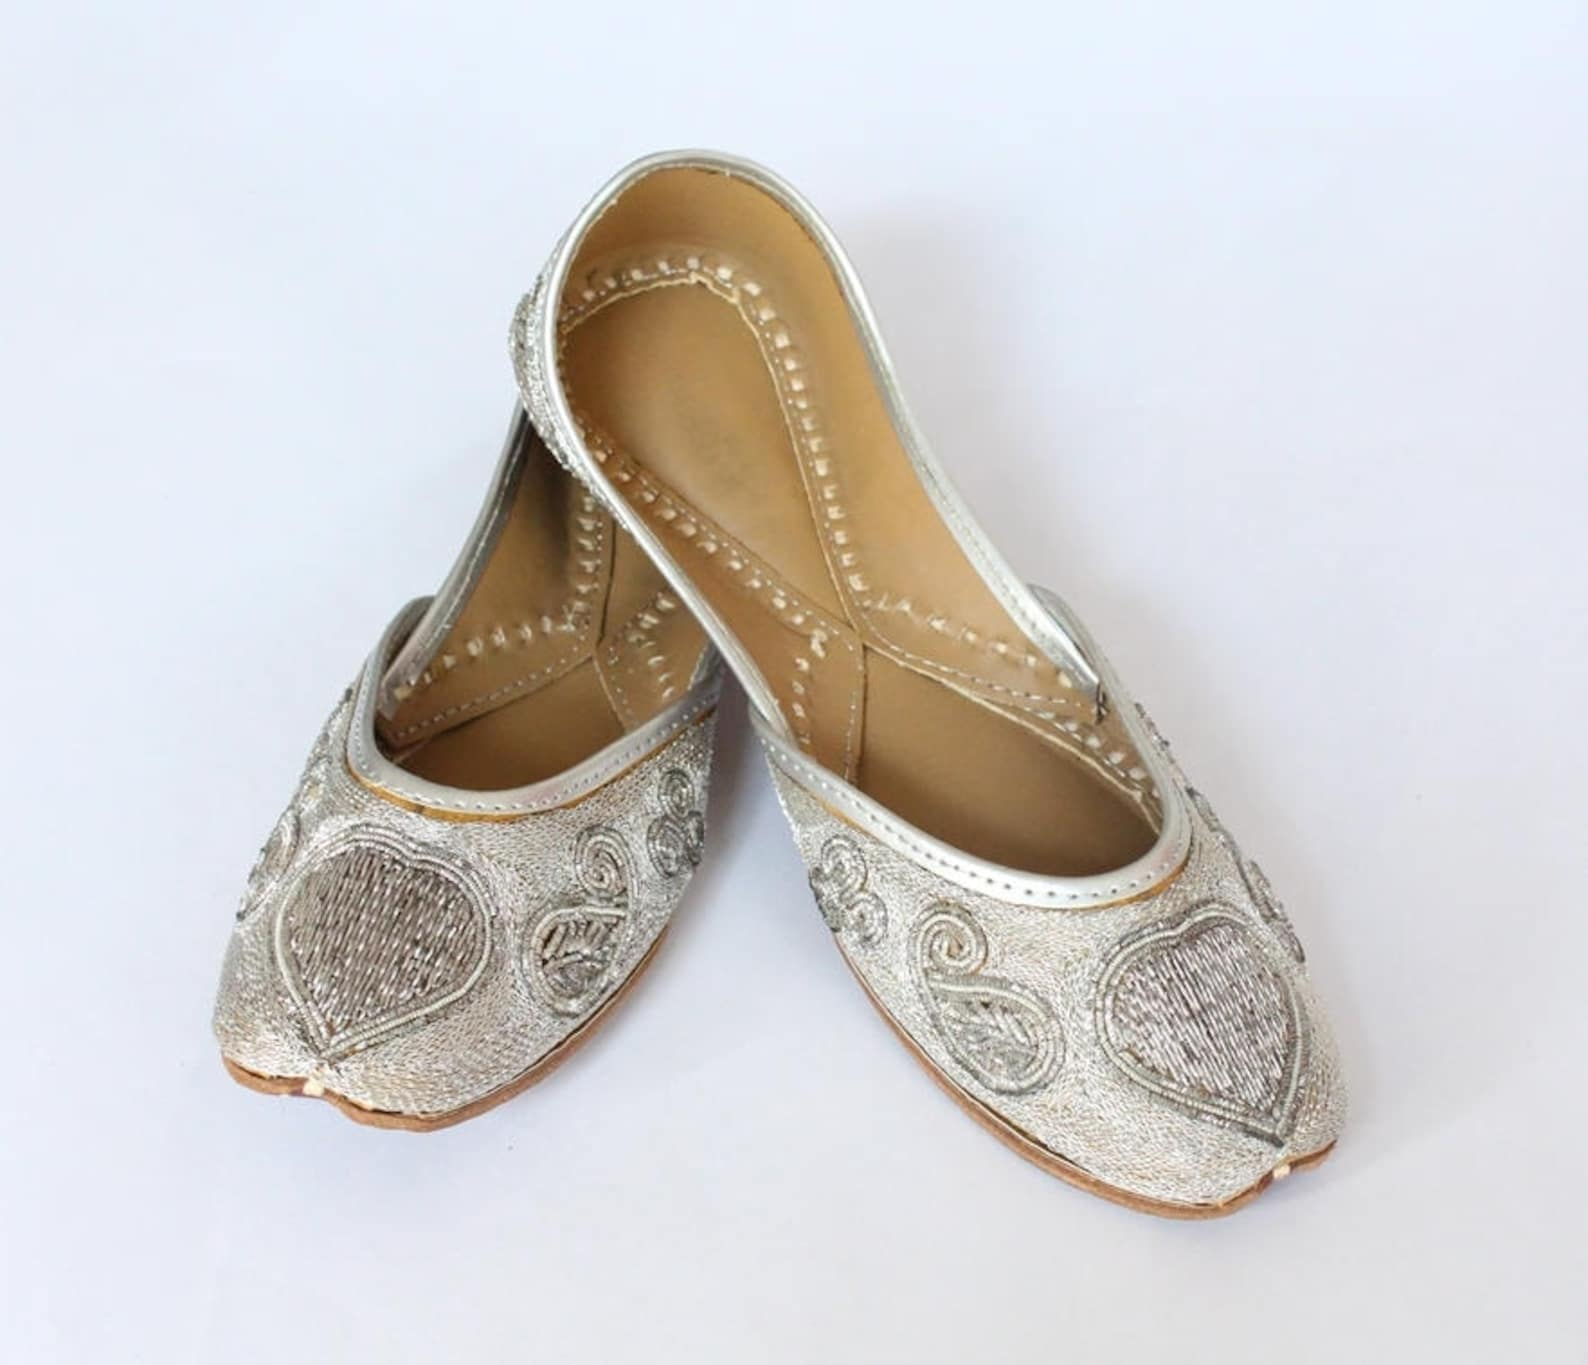 women bridal wedding shoes size 4.5/indian silver jutti shoes/silver wedding flats/silver ballet flats/jasmine shoes/khussa shoe